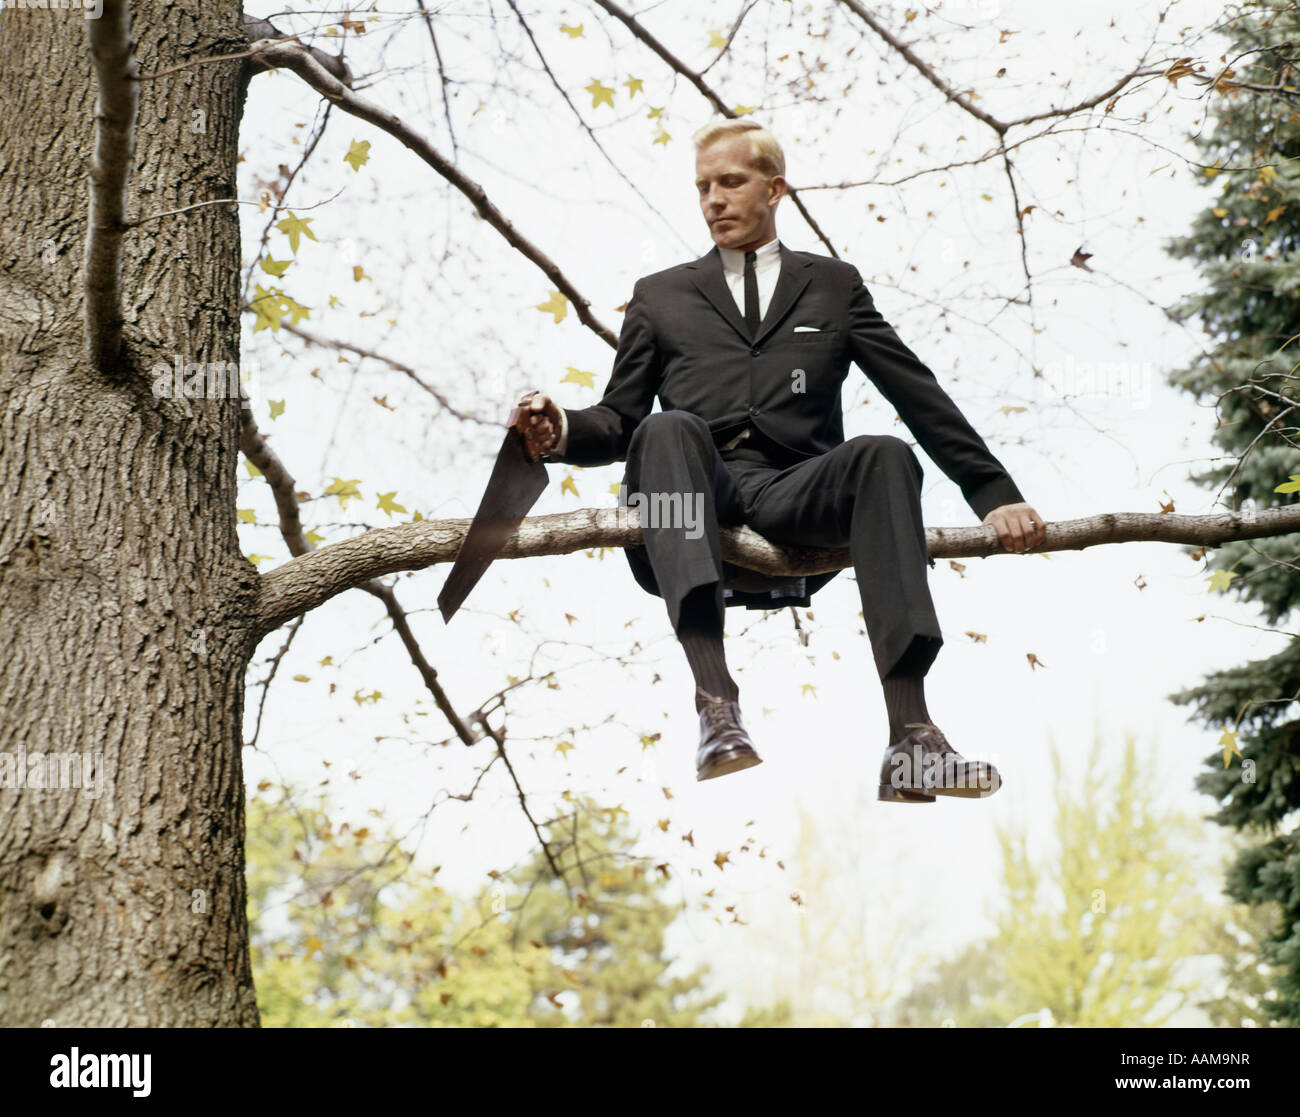 1960s-man-in-tree-sawing-off-branch-he-i